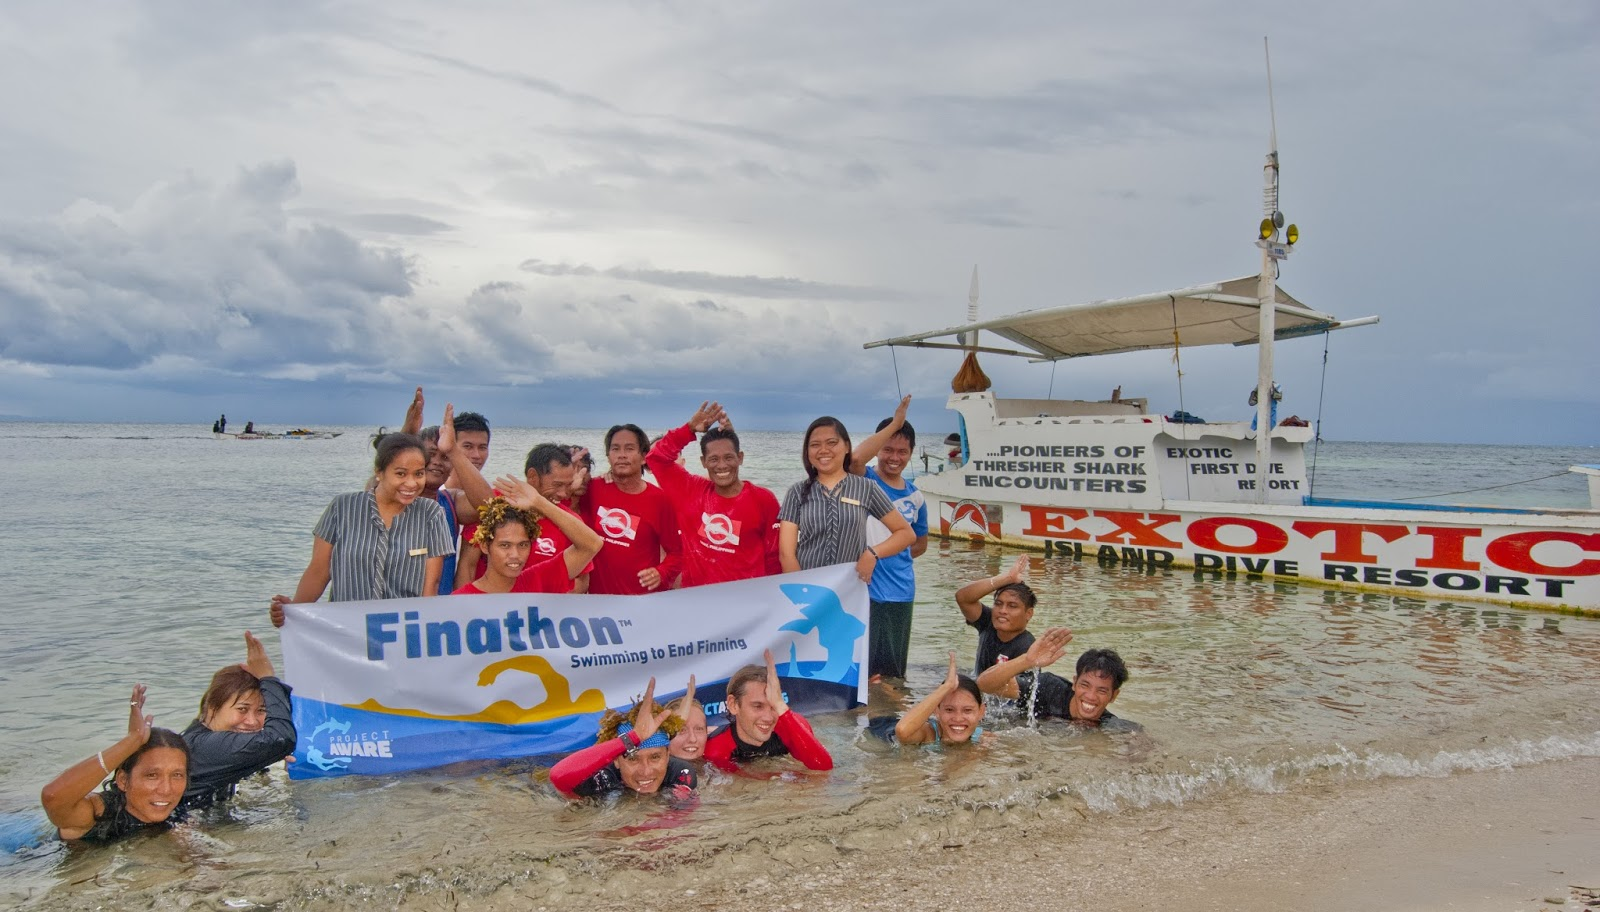 Exotic swimming to end finning! Project aware Finathon.